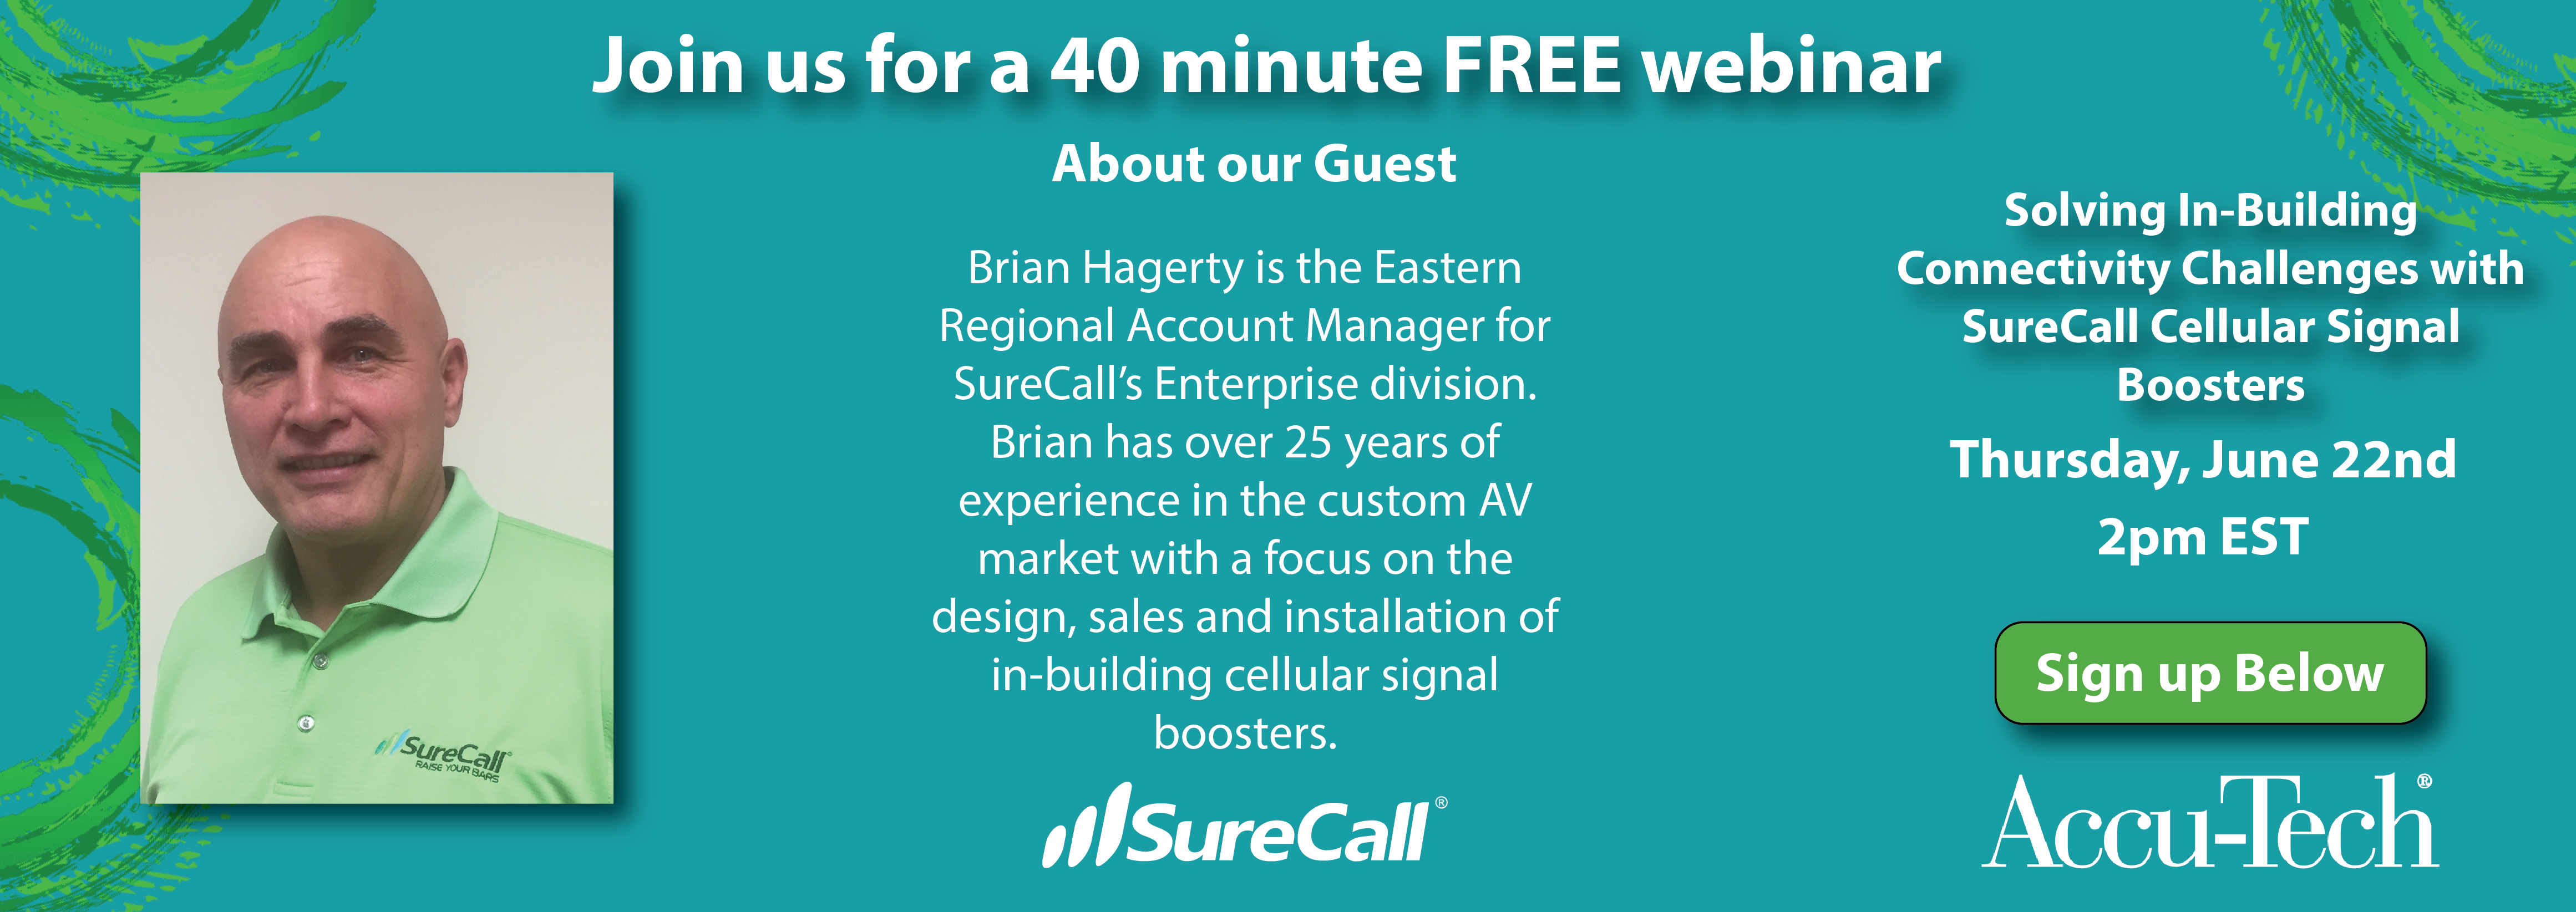 Join us for a FREE Webinar: Solving In-Building Connectivity